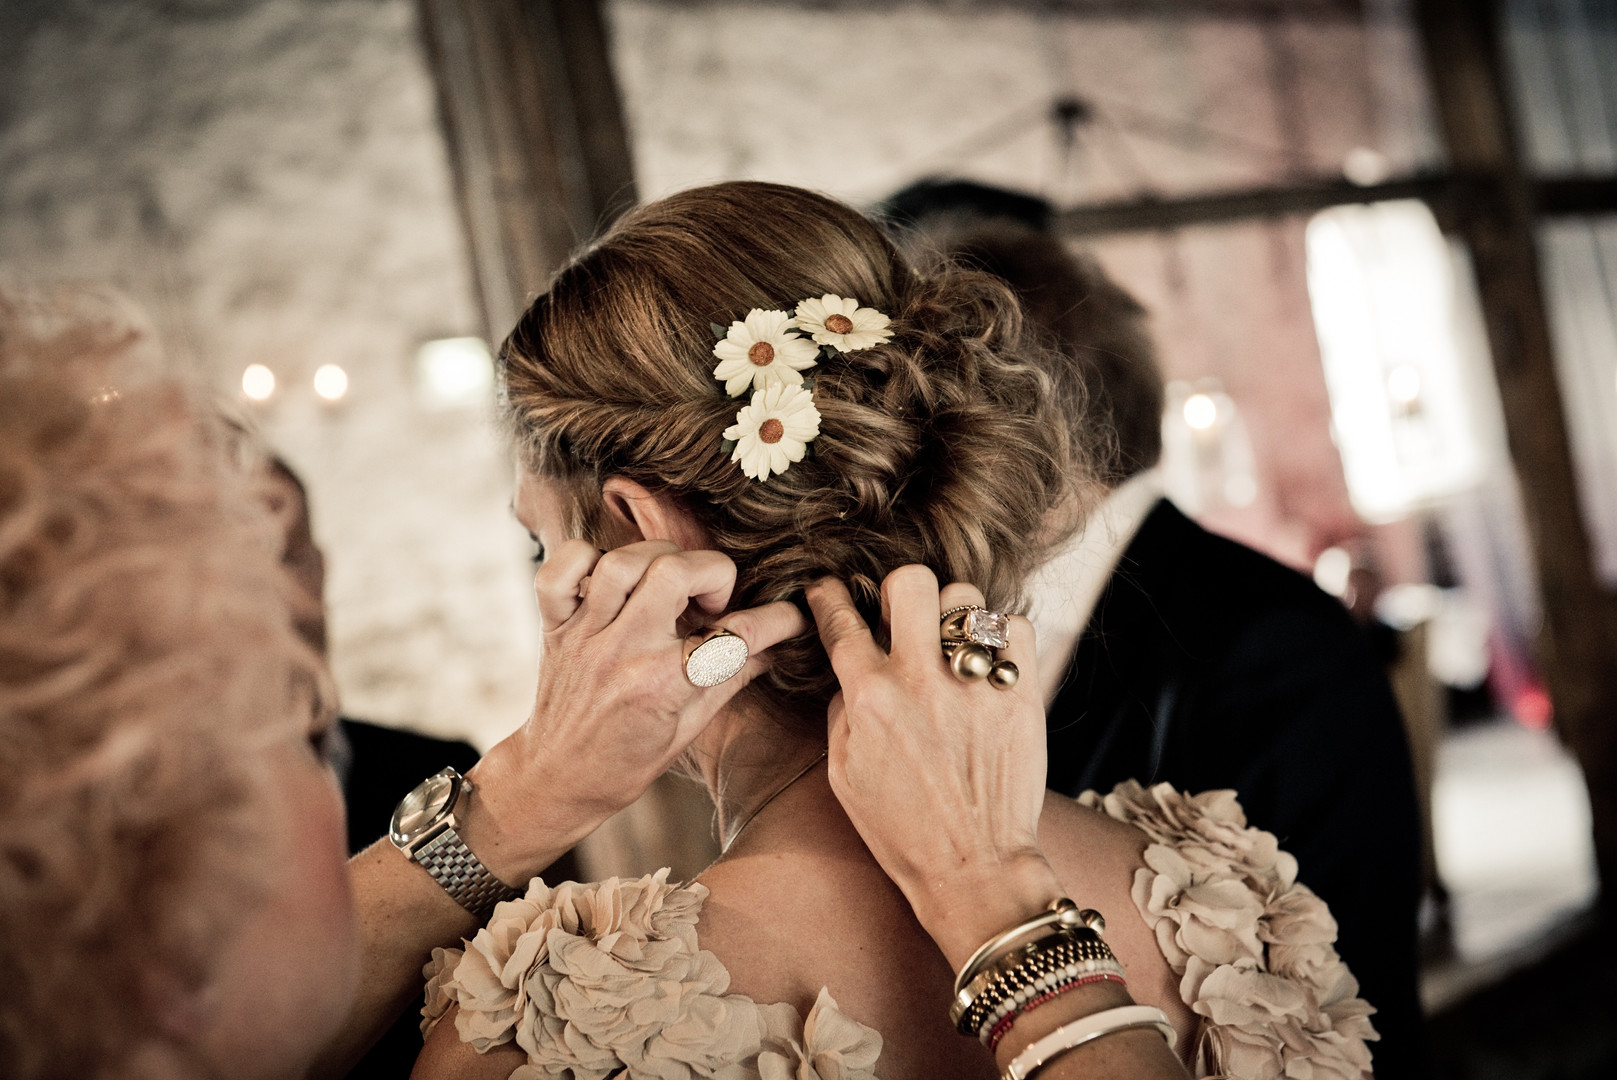 Hair Stylists & Make Up